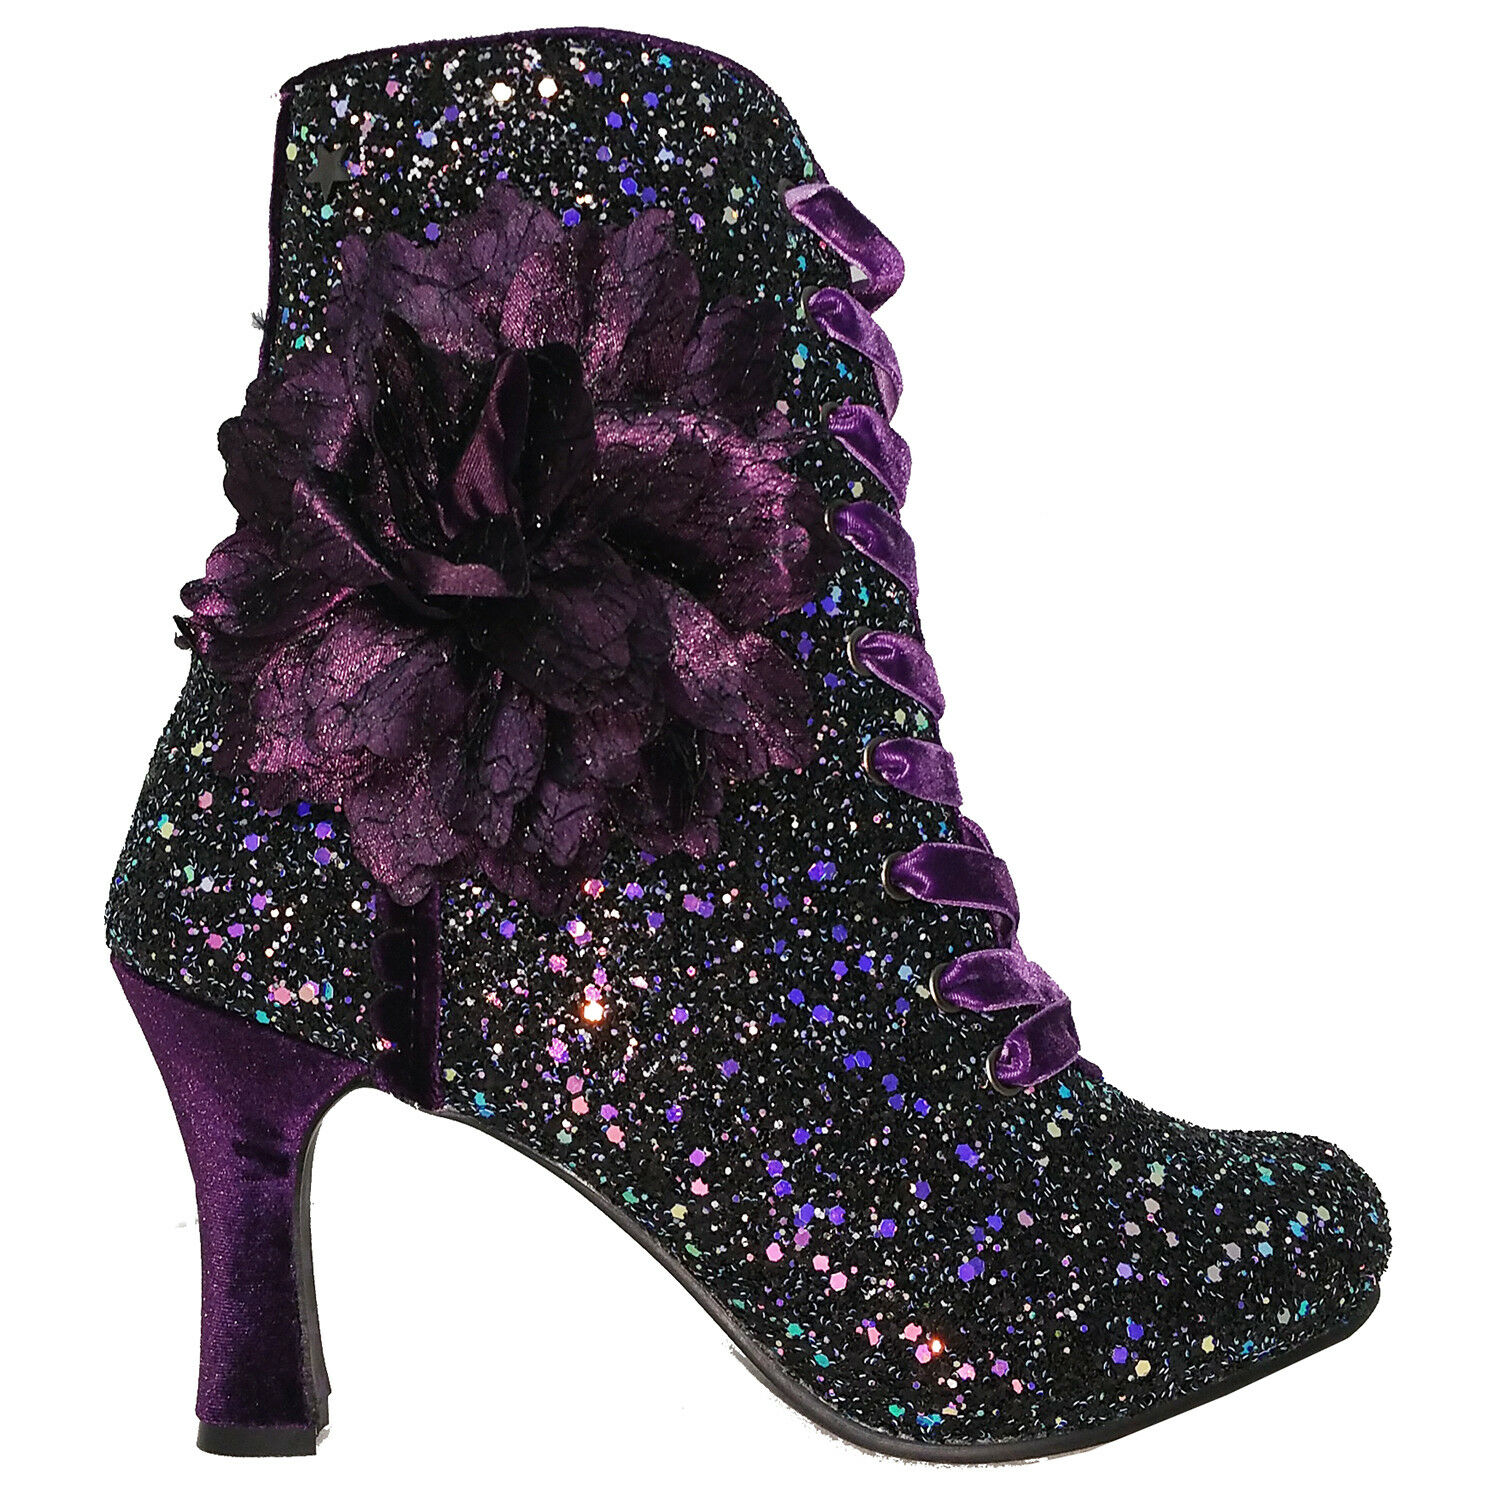 Joe marrons Rebel Violet Paillette Velours Lacet Fleur